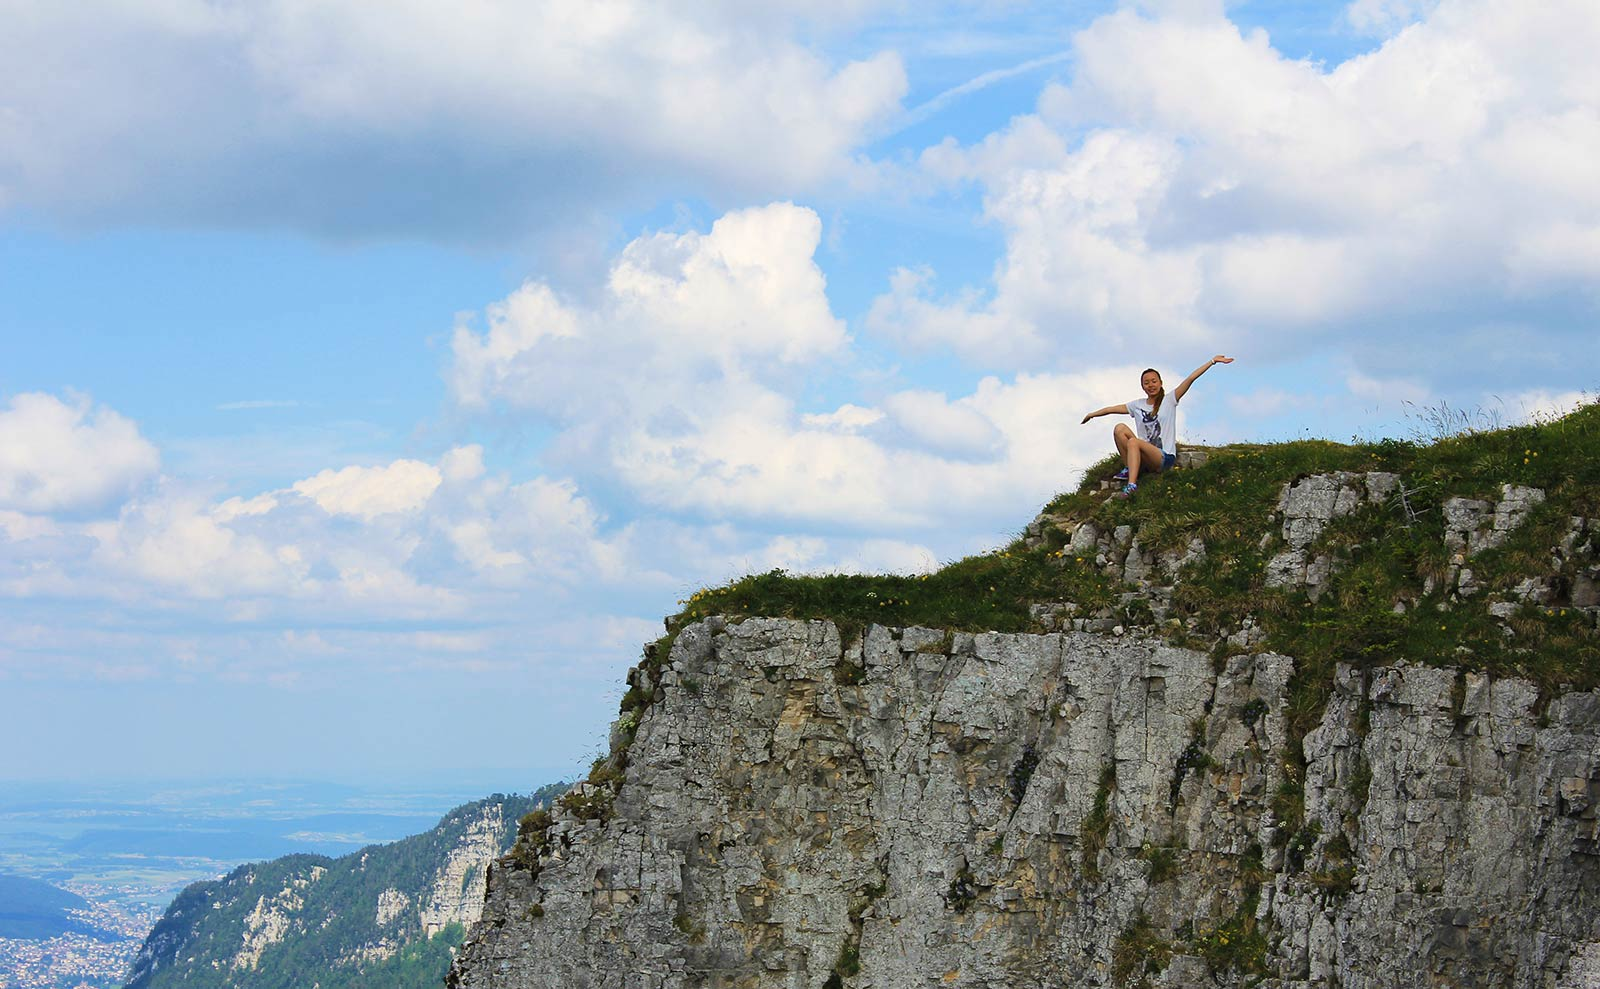 Leonie on top of the cliff edge at Creux du Van Switzerland